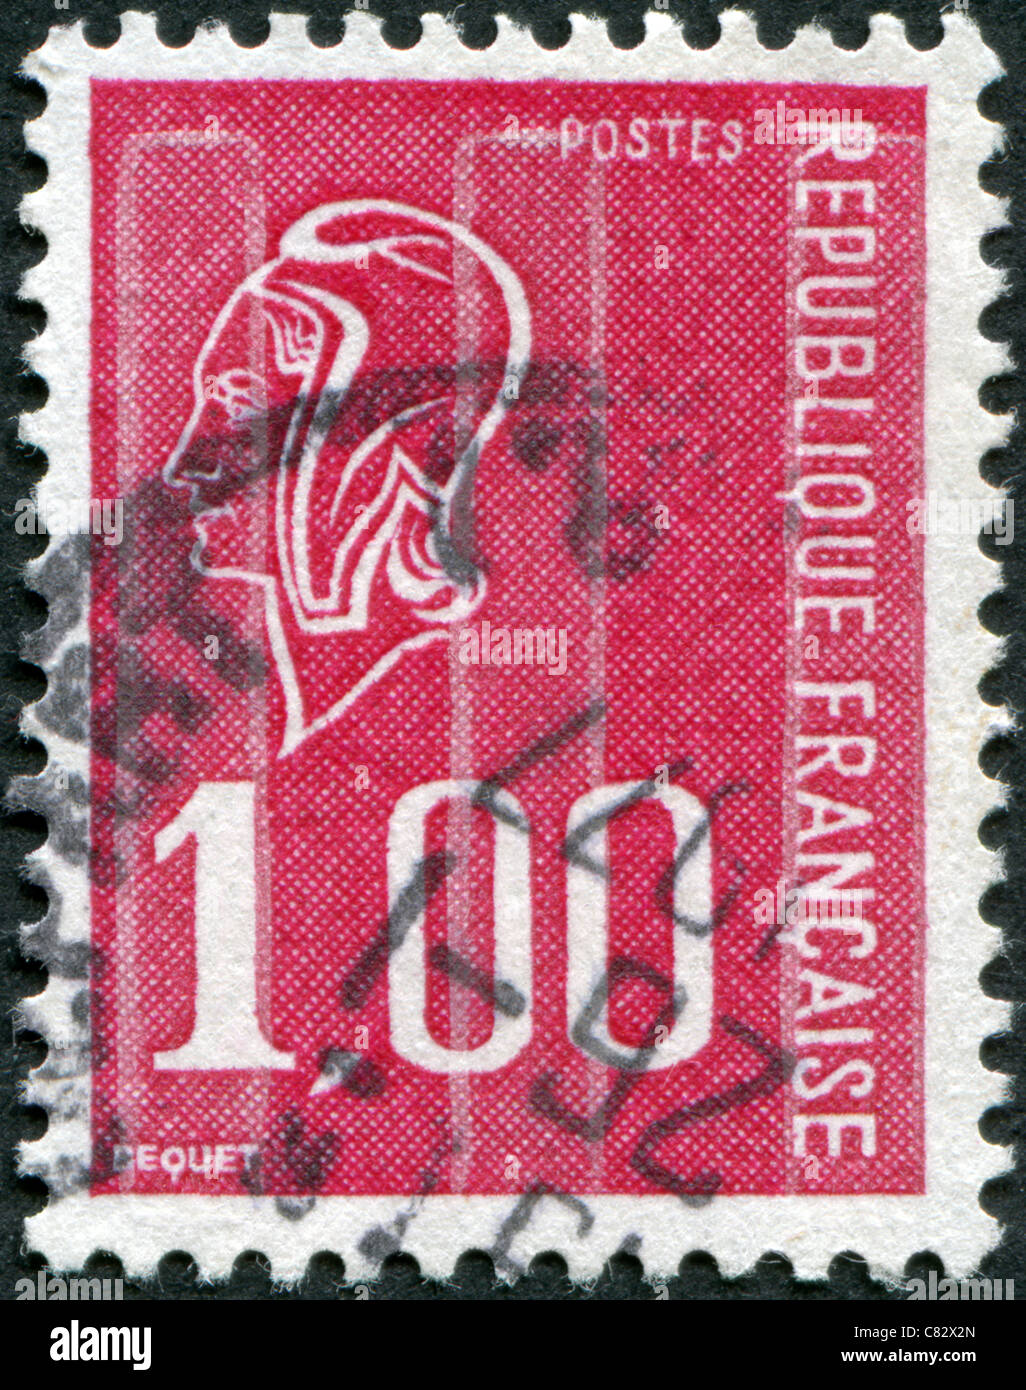 FRANCE - 1976: A stamp printed in France, depicts Marianne (by Bequet) is a national emblem of France - Stock Image